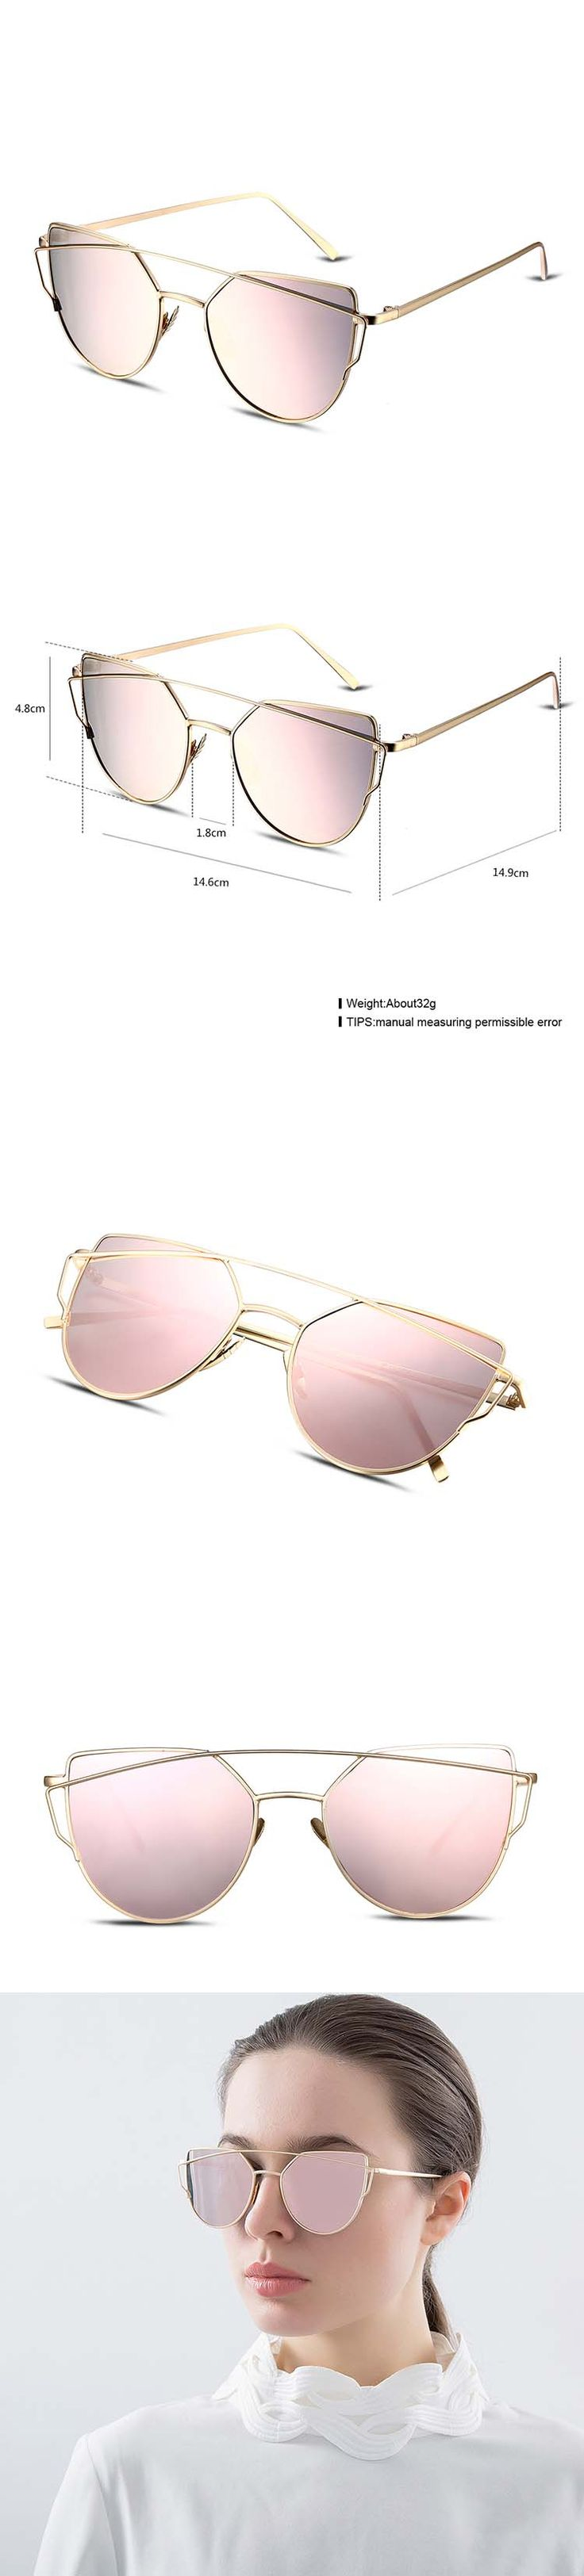 Sunglasses / new oval women / sun sunglasses / light-blocking glasses / a variety of colors